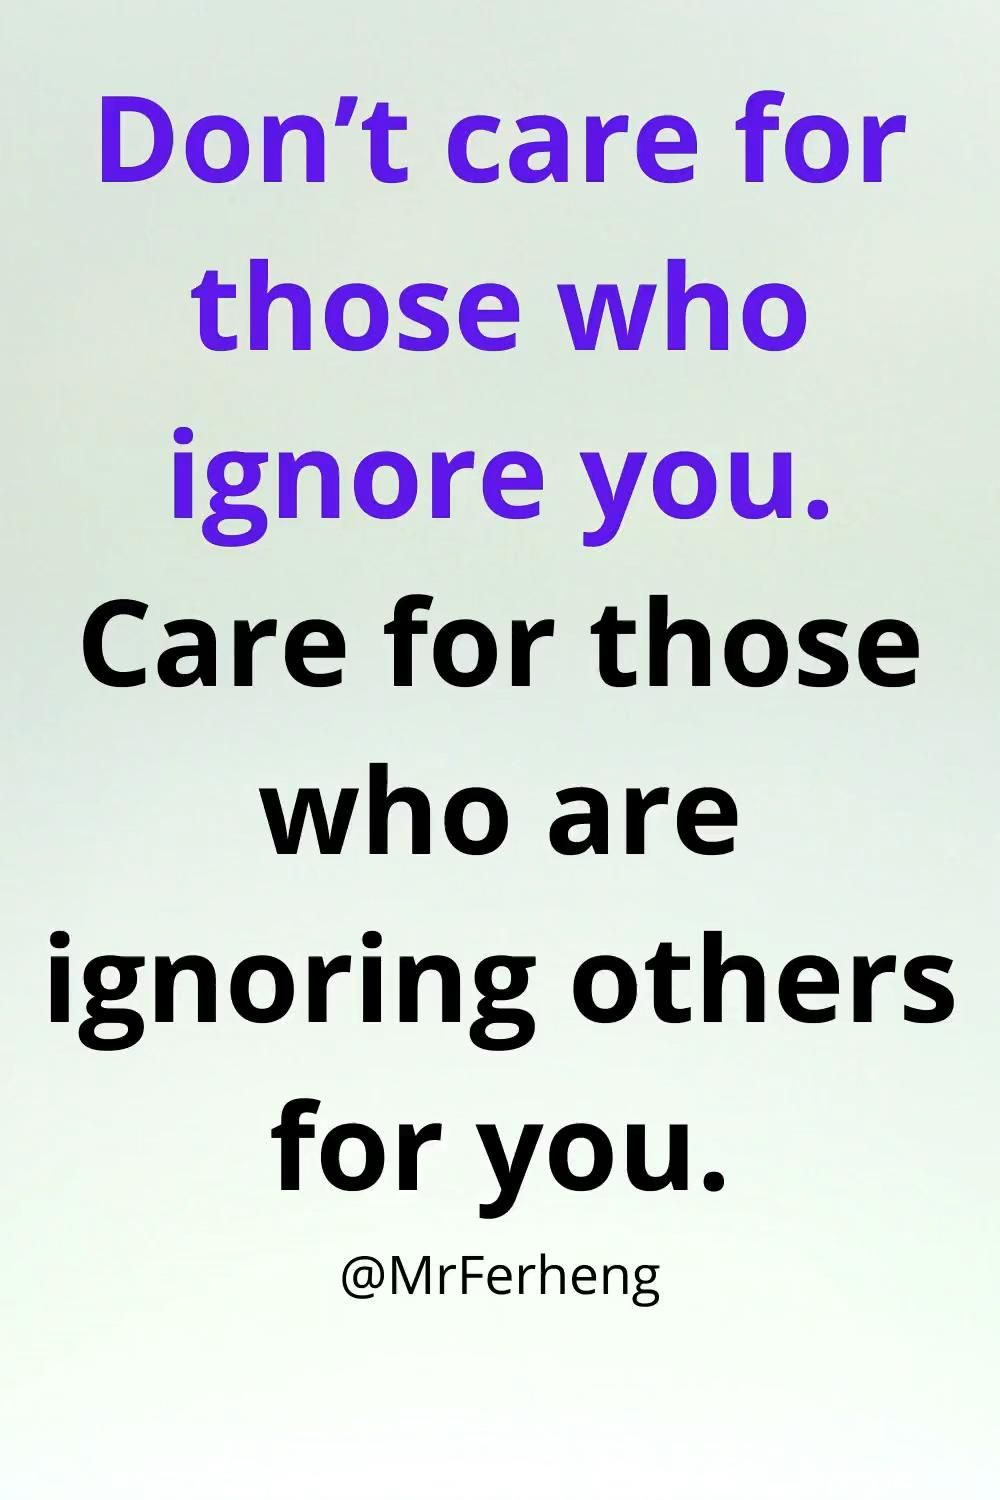 Care for those who ignore others for you